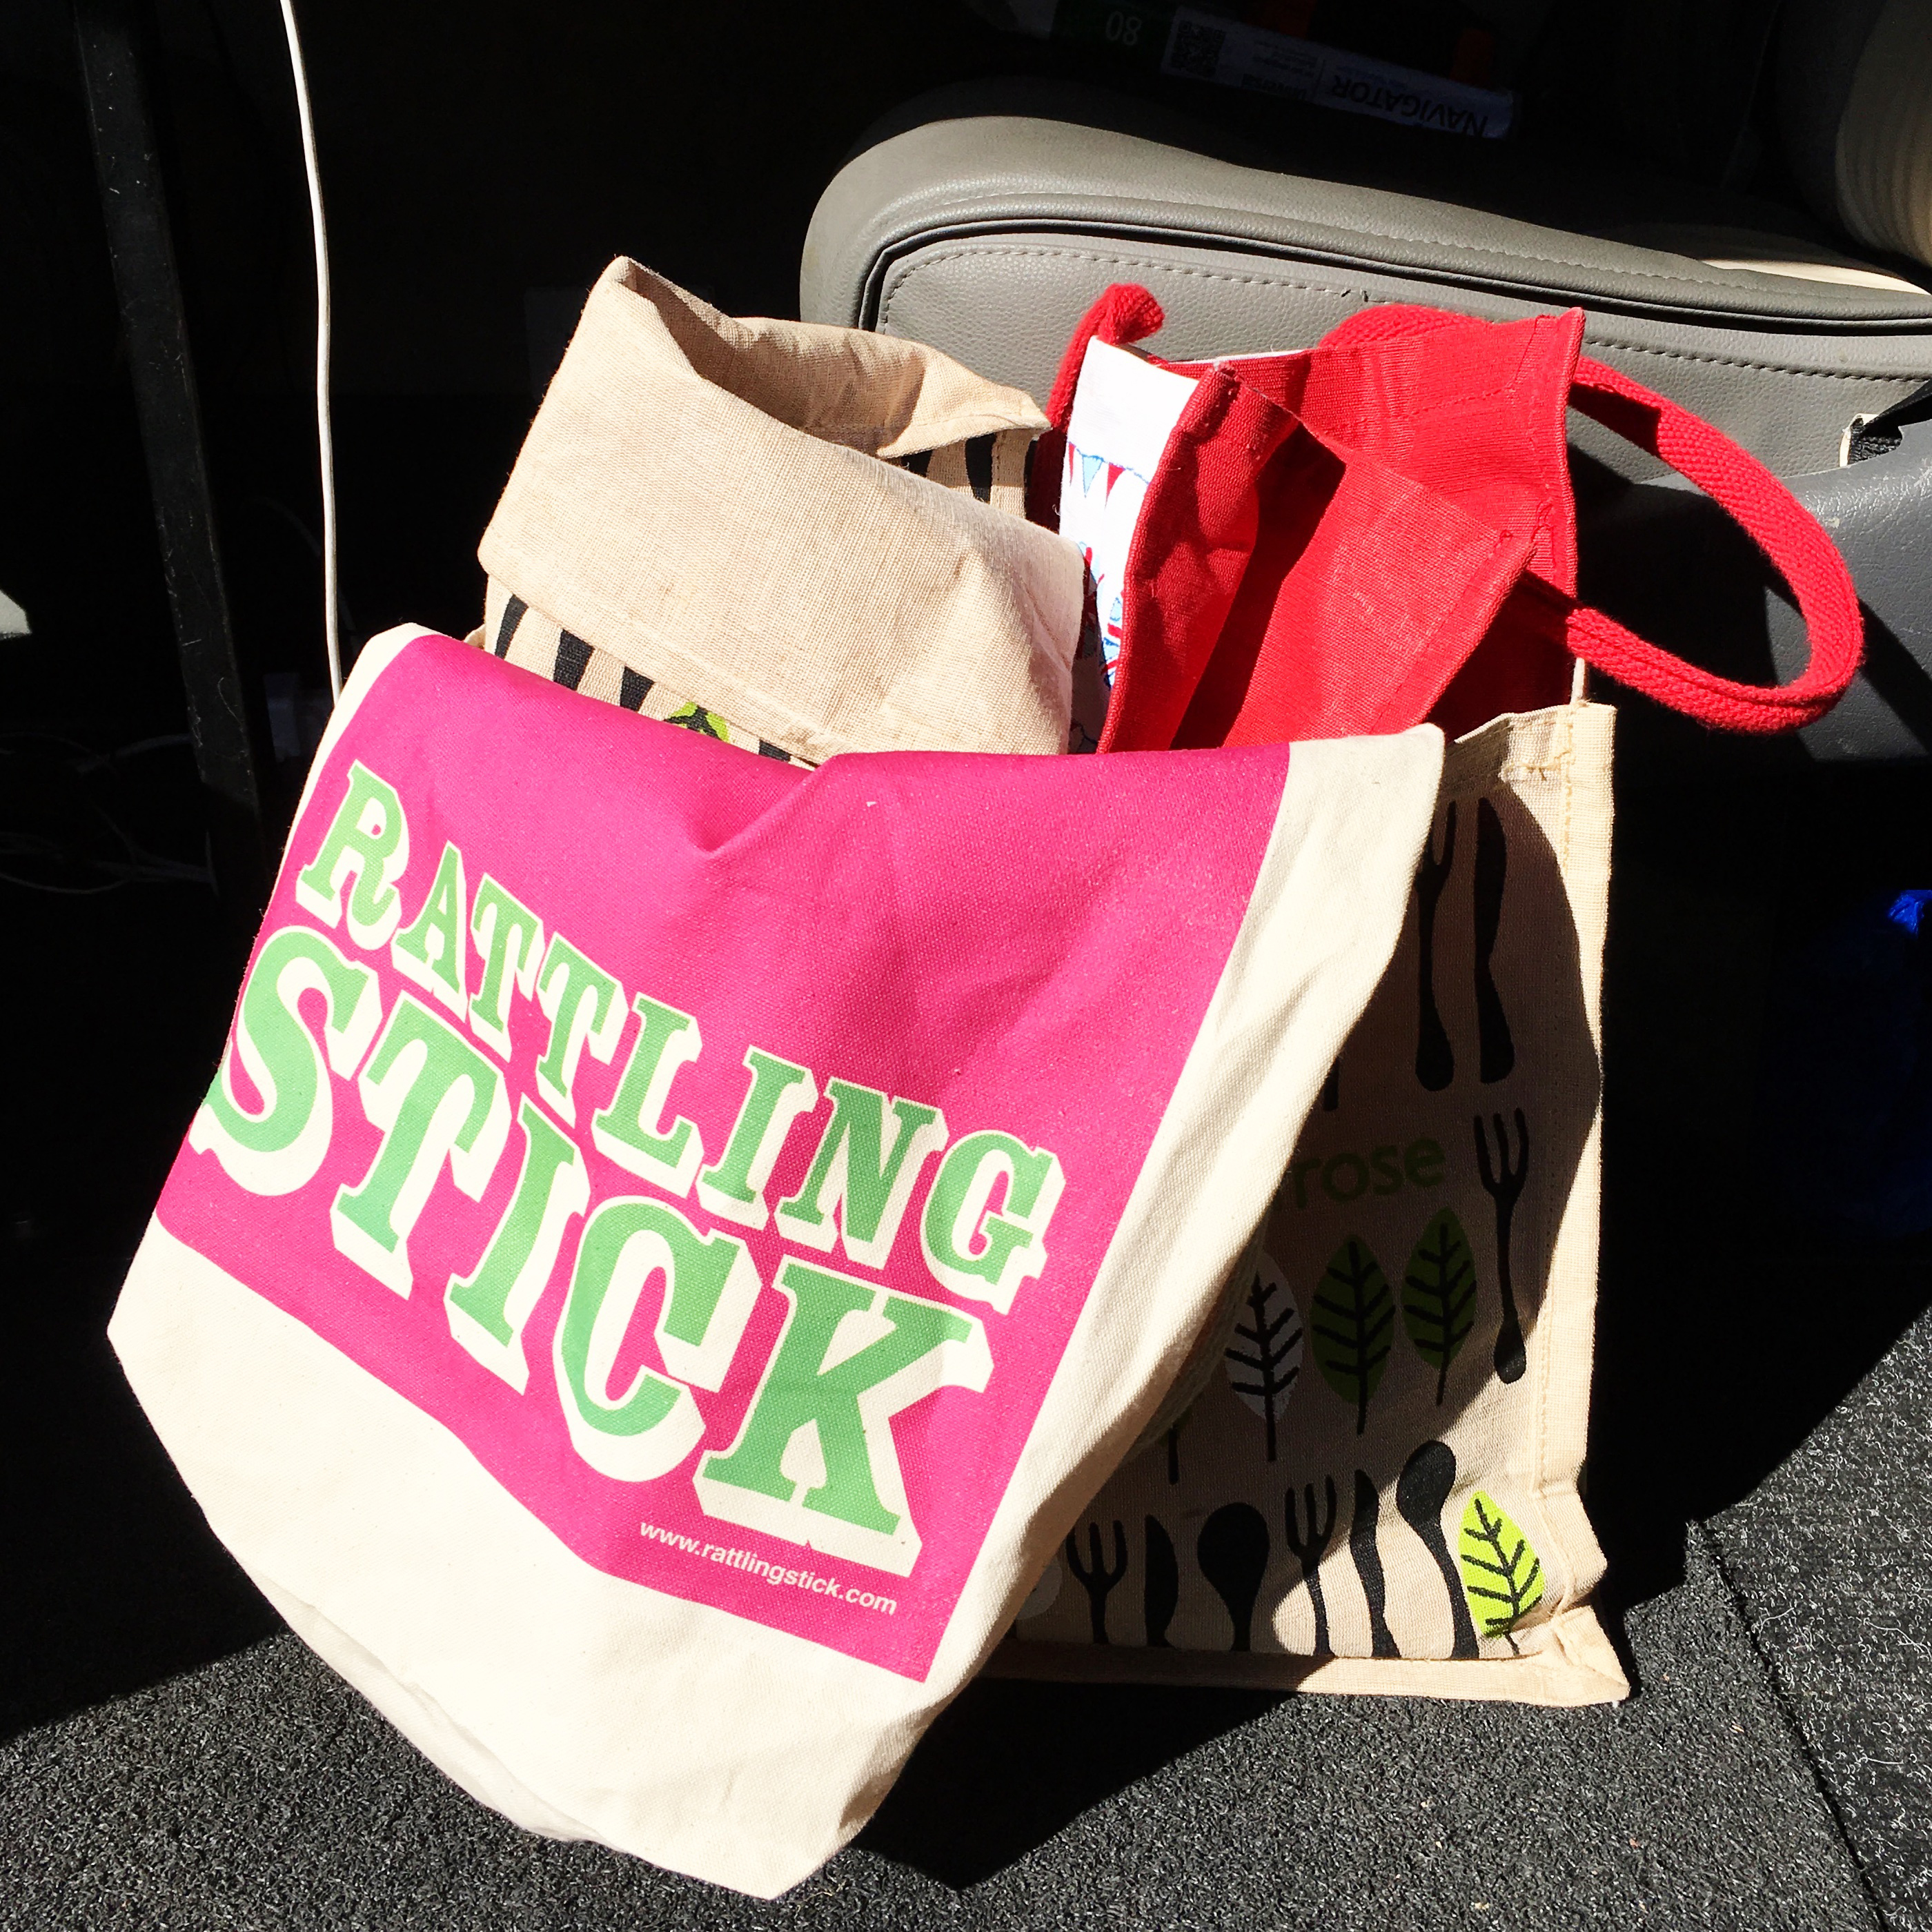 Rattling Stick's canvas bags